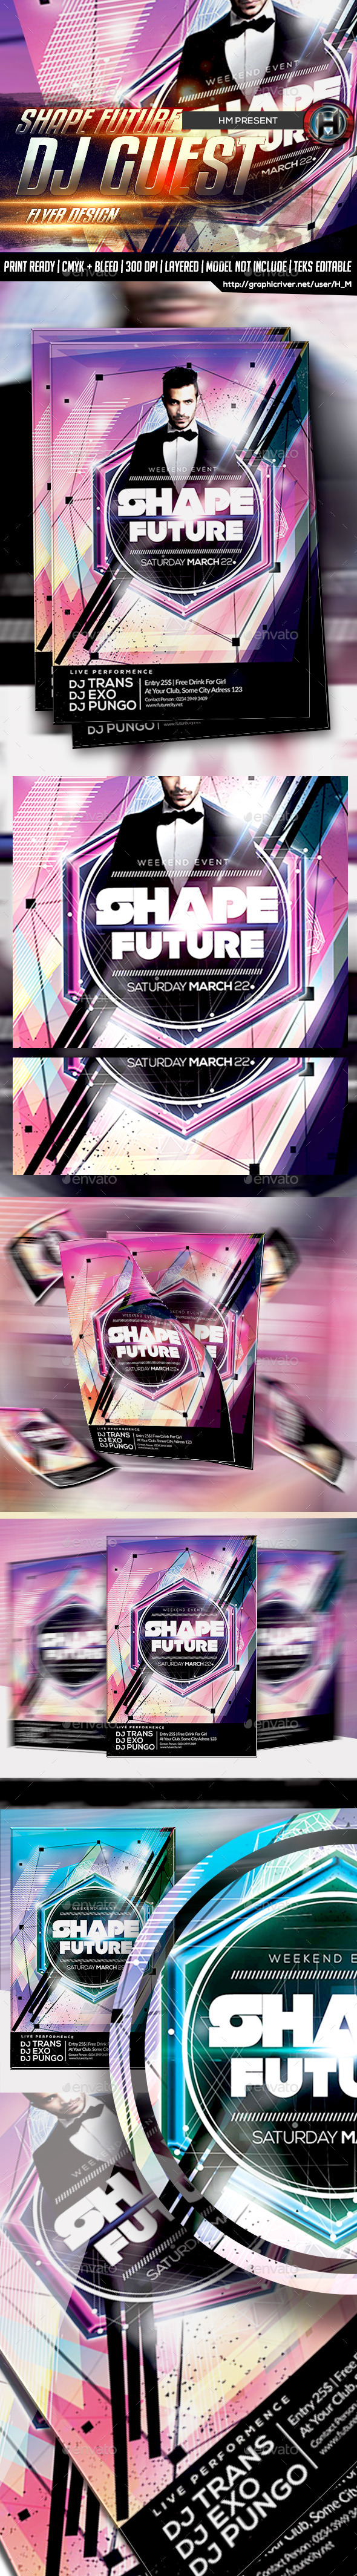 GraphicRiver Shape Future Guest Dj Flyer 9848195